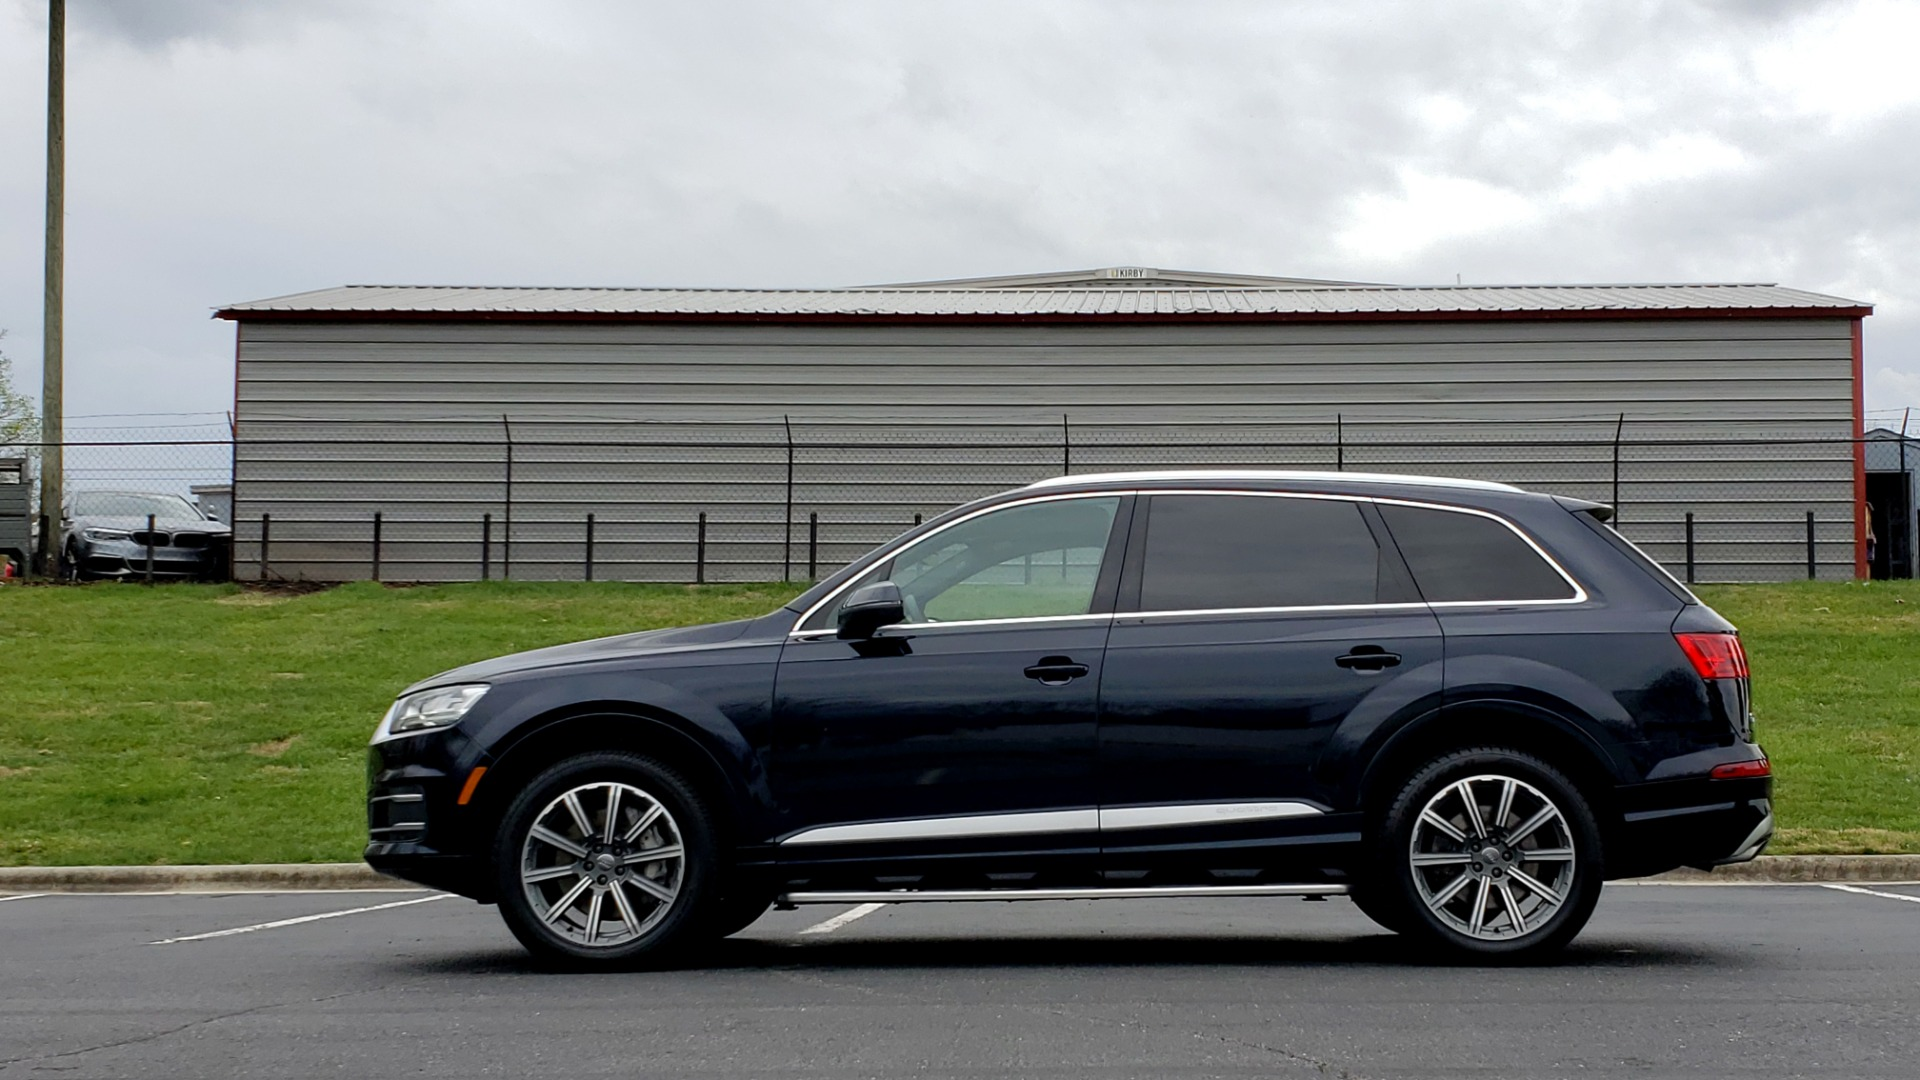 Used 2017 Audi Q7 PRESTIGE 3.0T / AWD / NAV / PANO-ROOF / HTD STS / BOSE / VISION for sale Sold at Formula Imports in Charlotte NC 28227 2